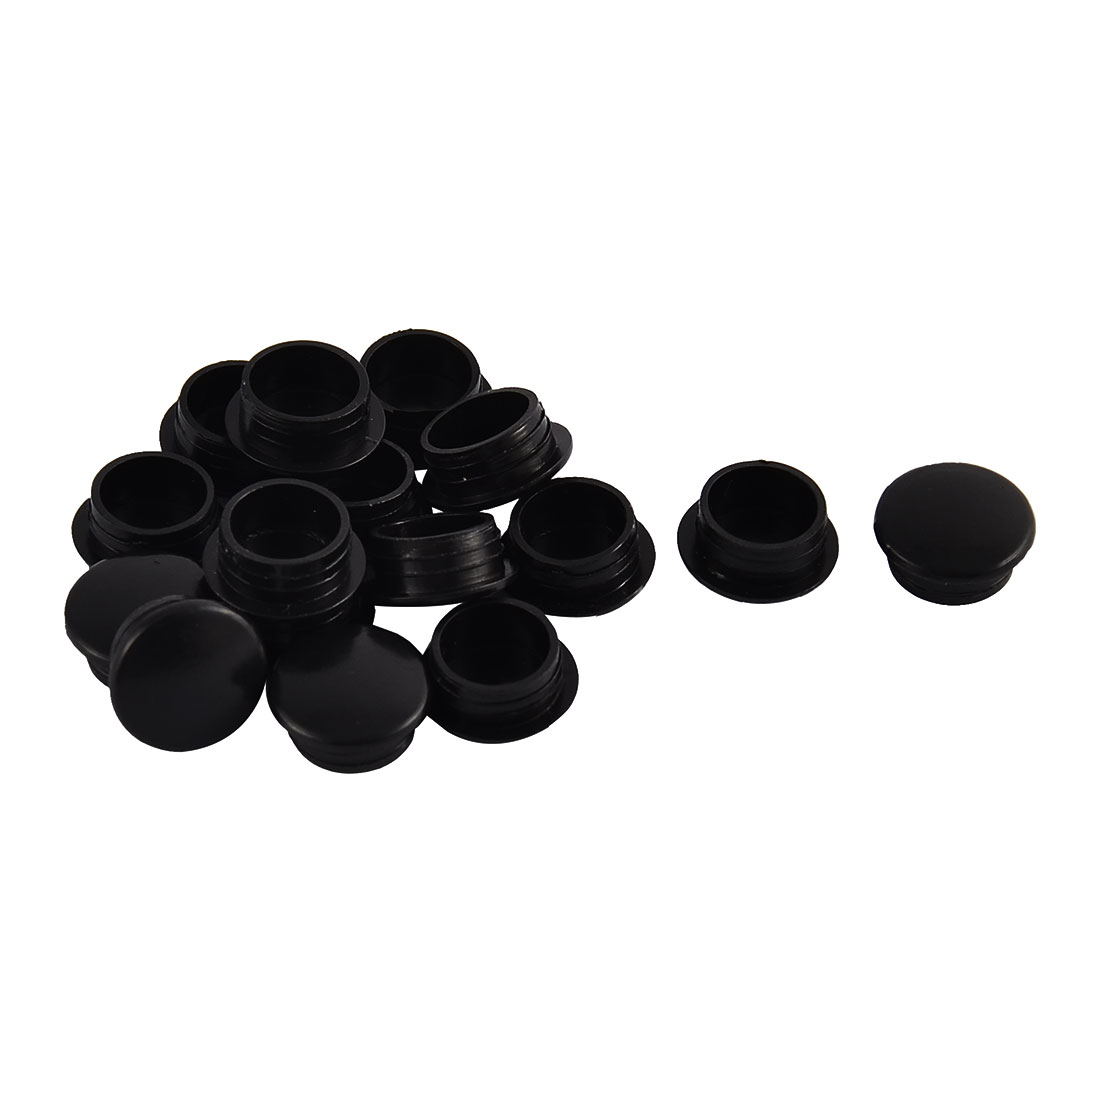 Home Plastic Round Flush Mount Cable Connector Hole Stoppers Covers Black 12mm 16pcs